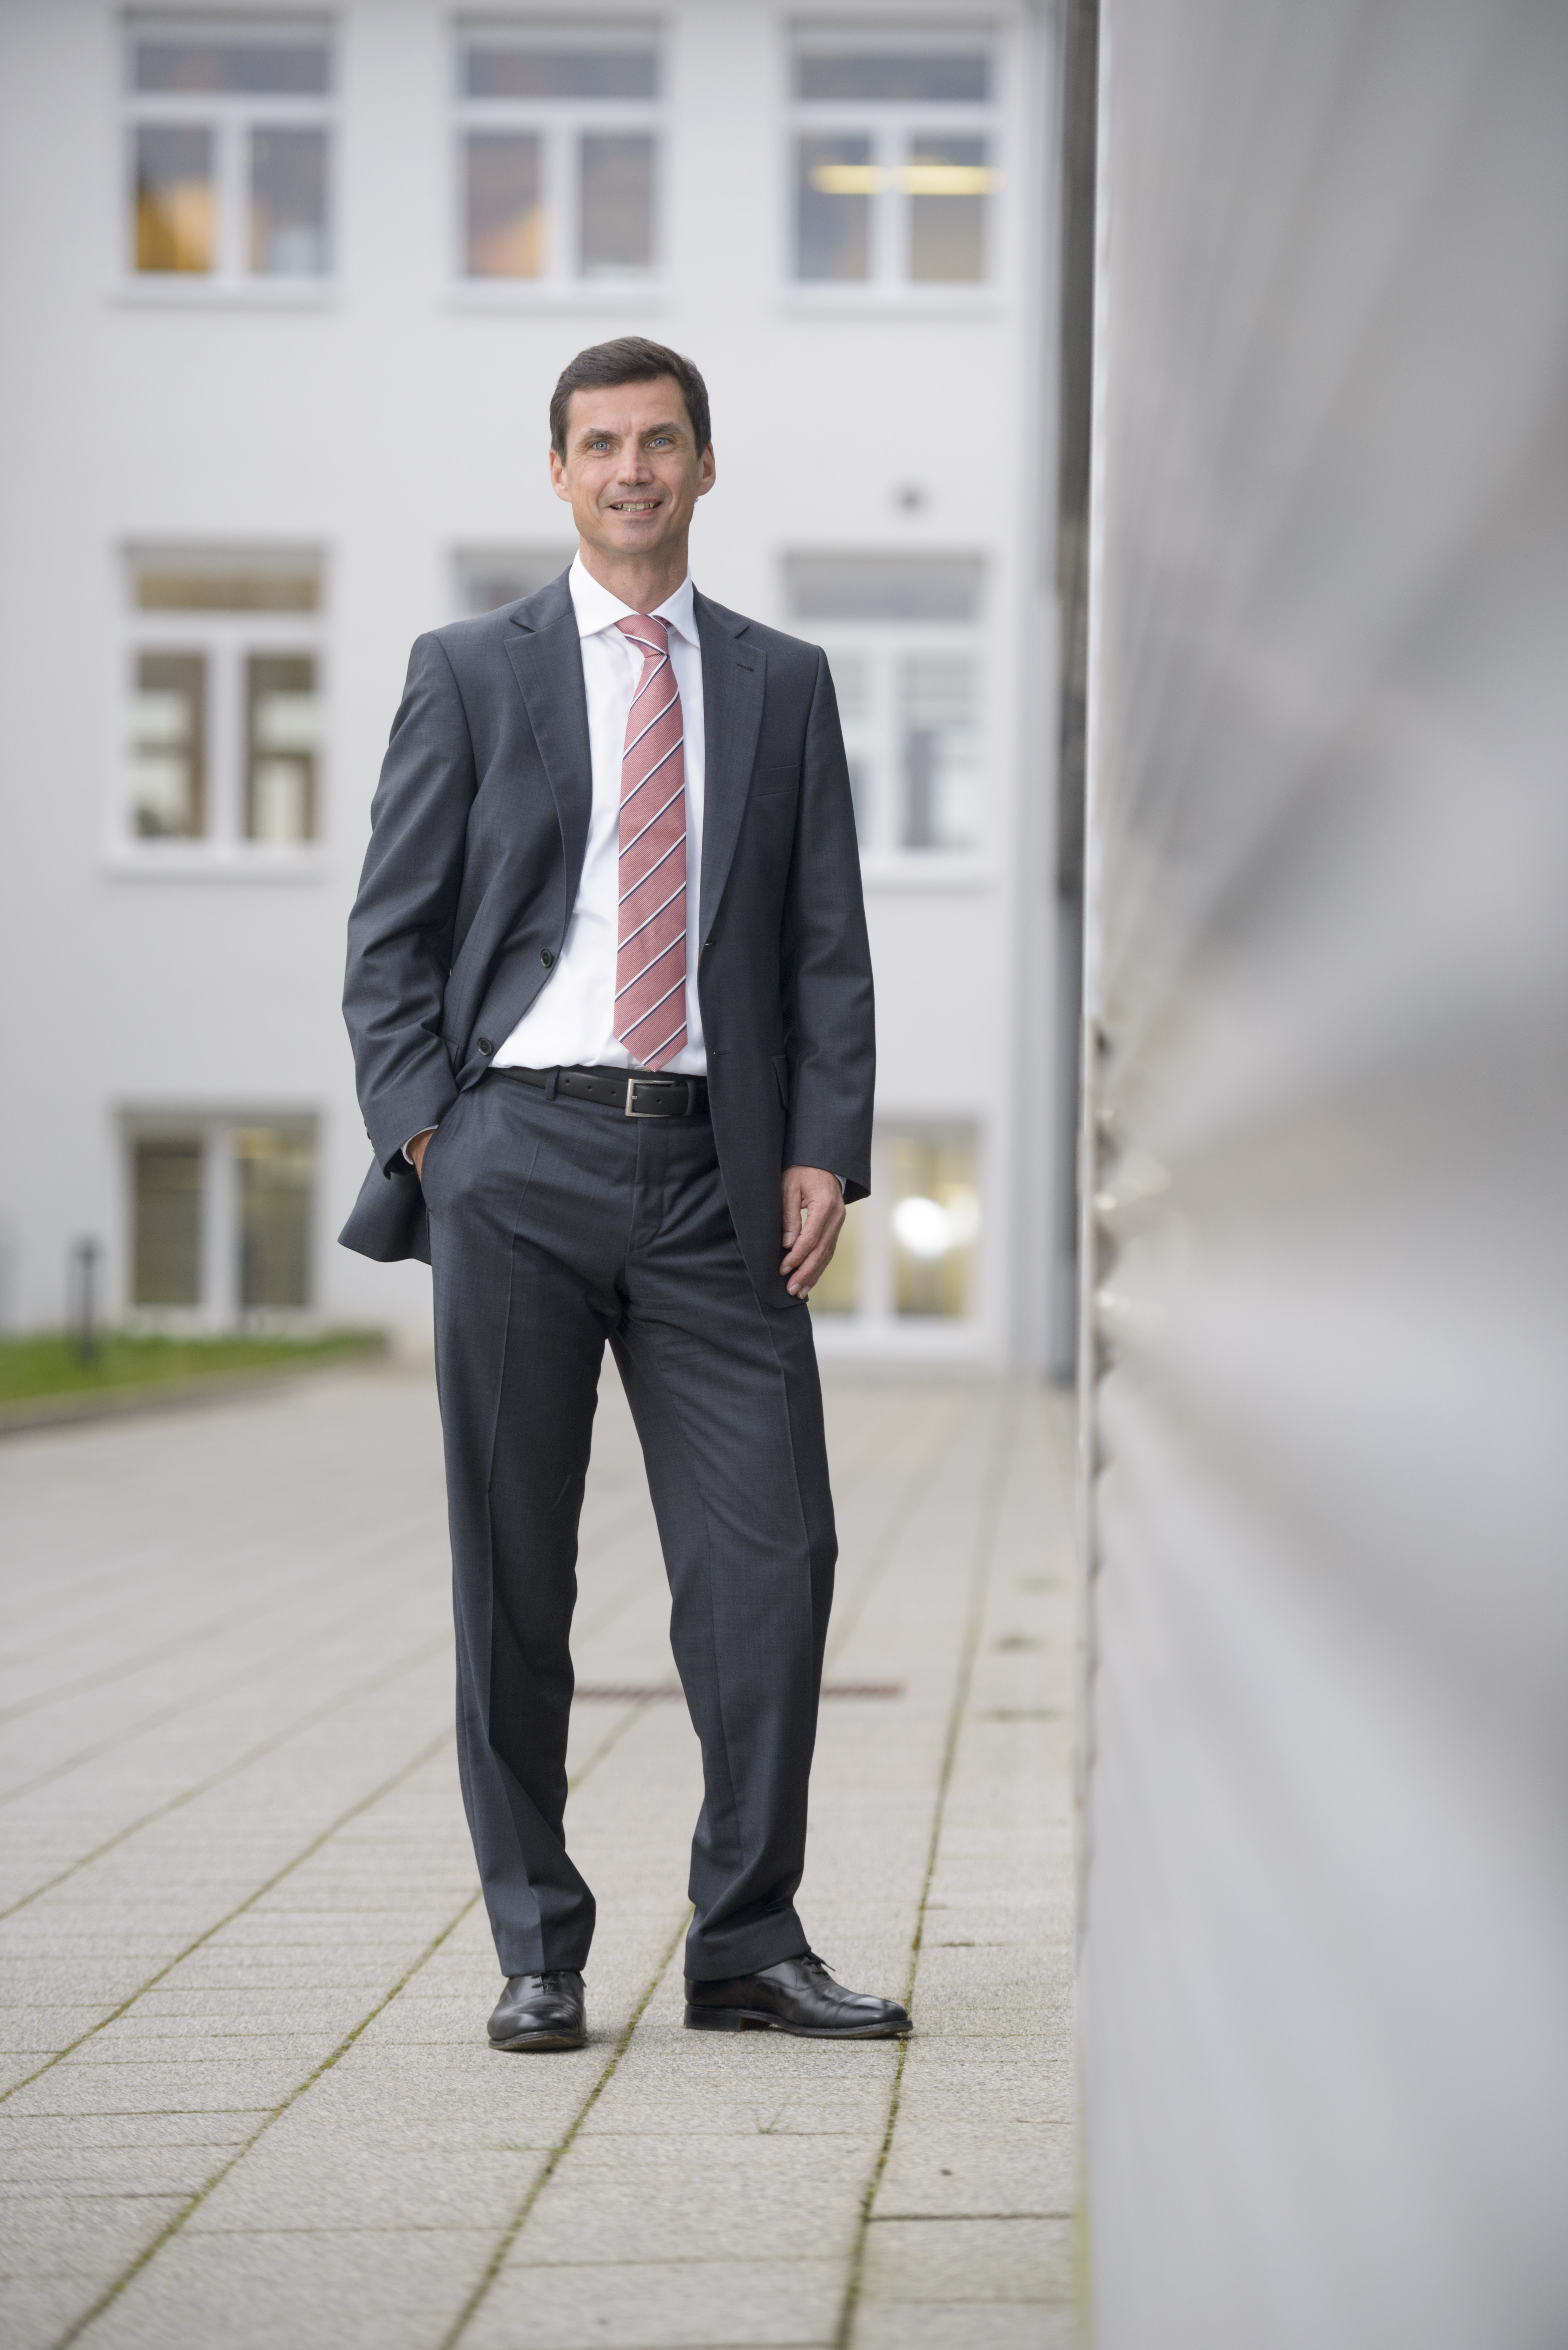 Thomas Bauer, Member of the Board of Management of the Thermotechnology Division